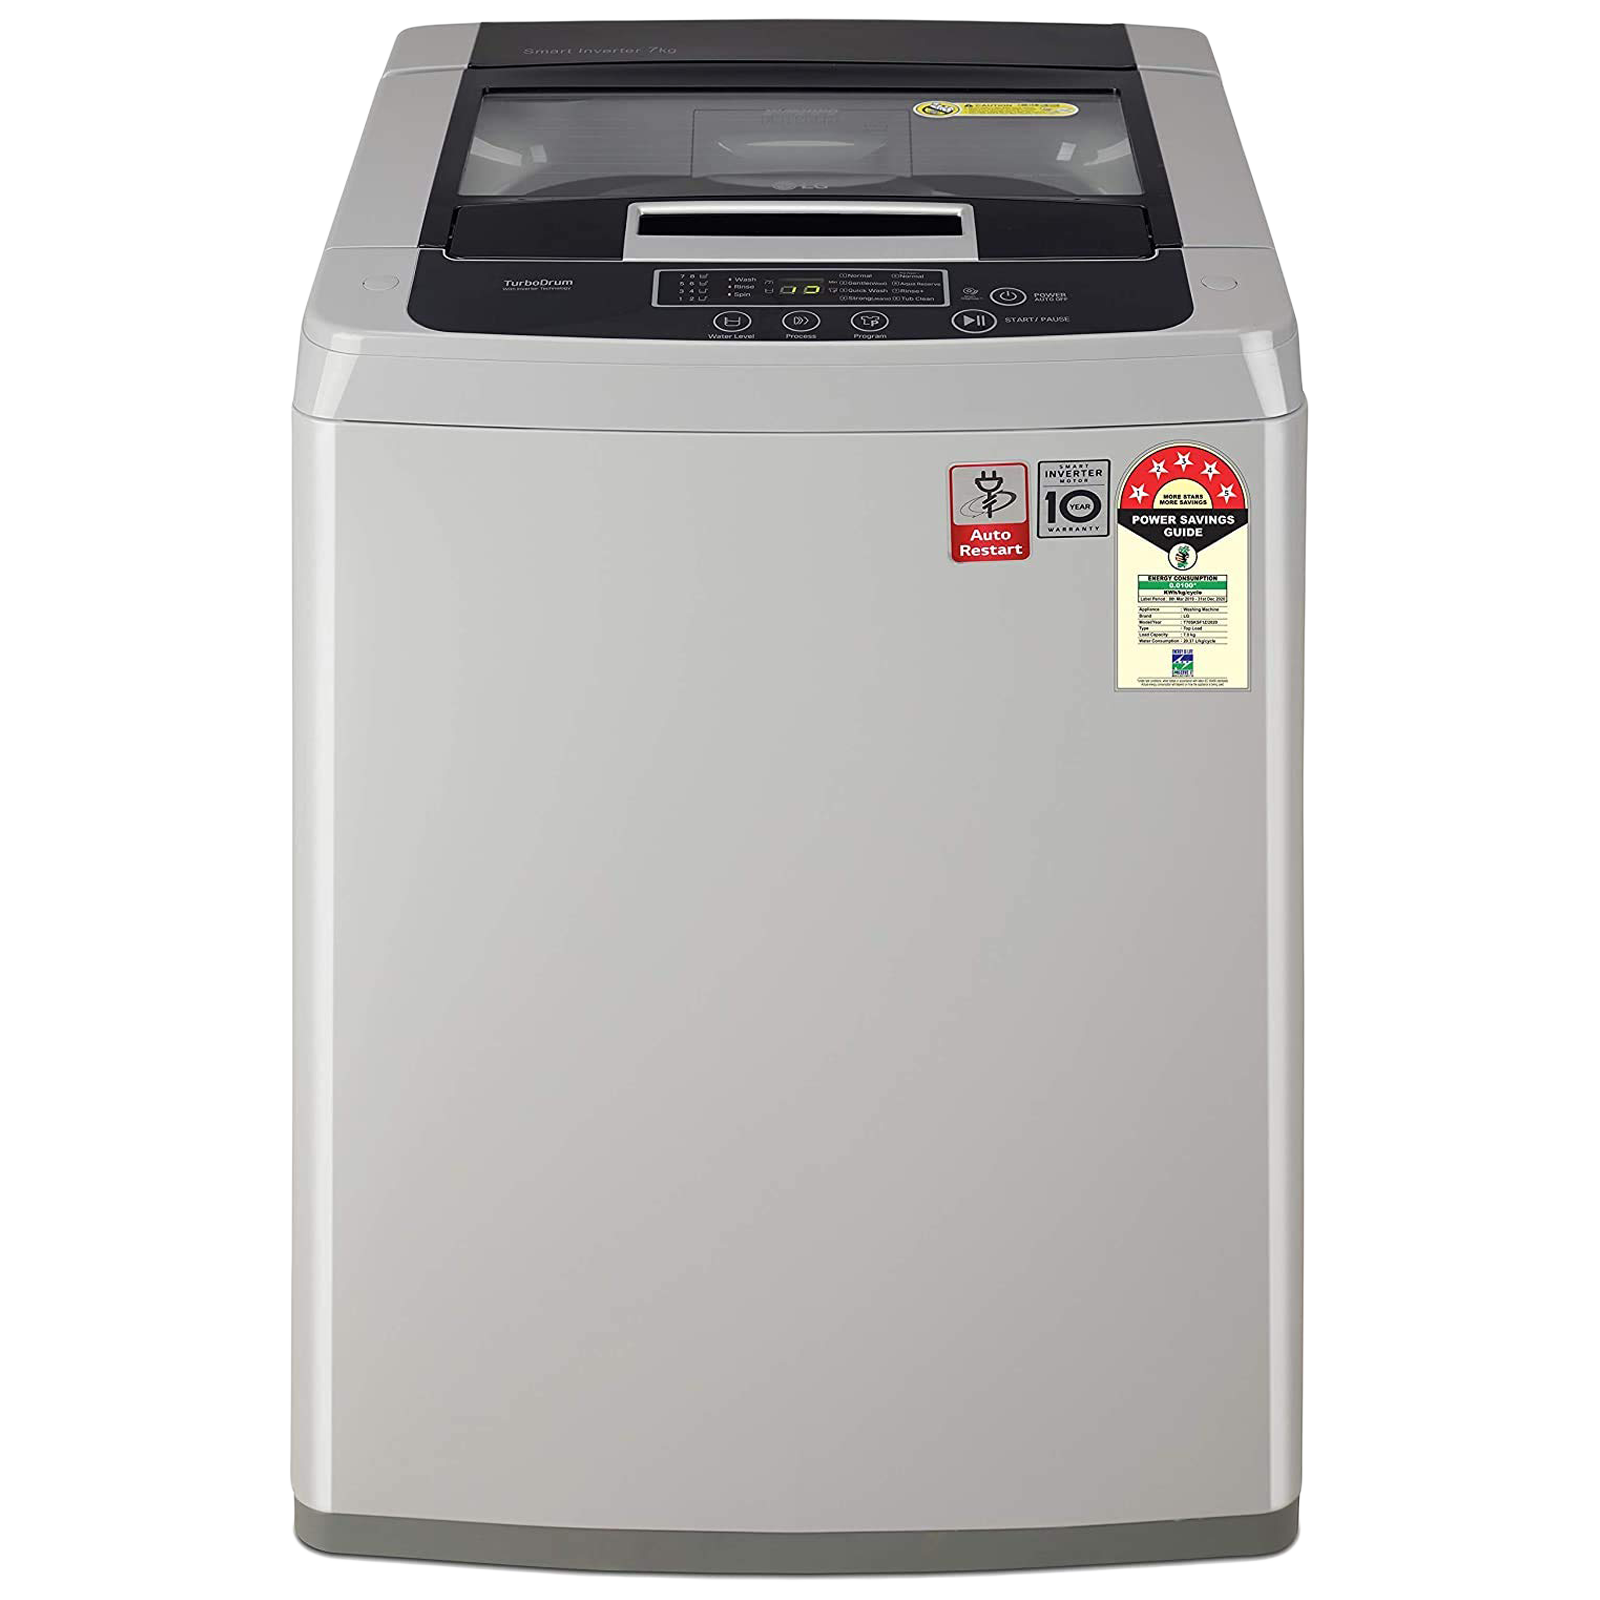 LG 7.5 kg 5 Star Fully Automatic Top Load Washing Machine (Auto Restart, T75SKSF1Z.ASFQEIL, Middle Free Silver)_1